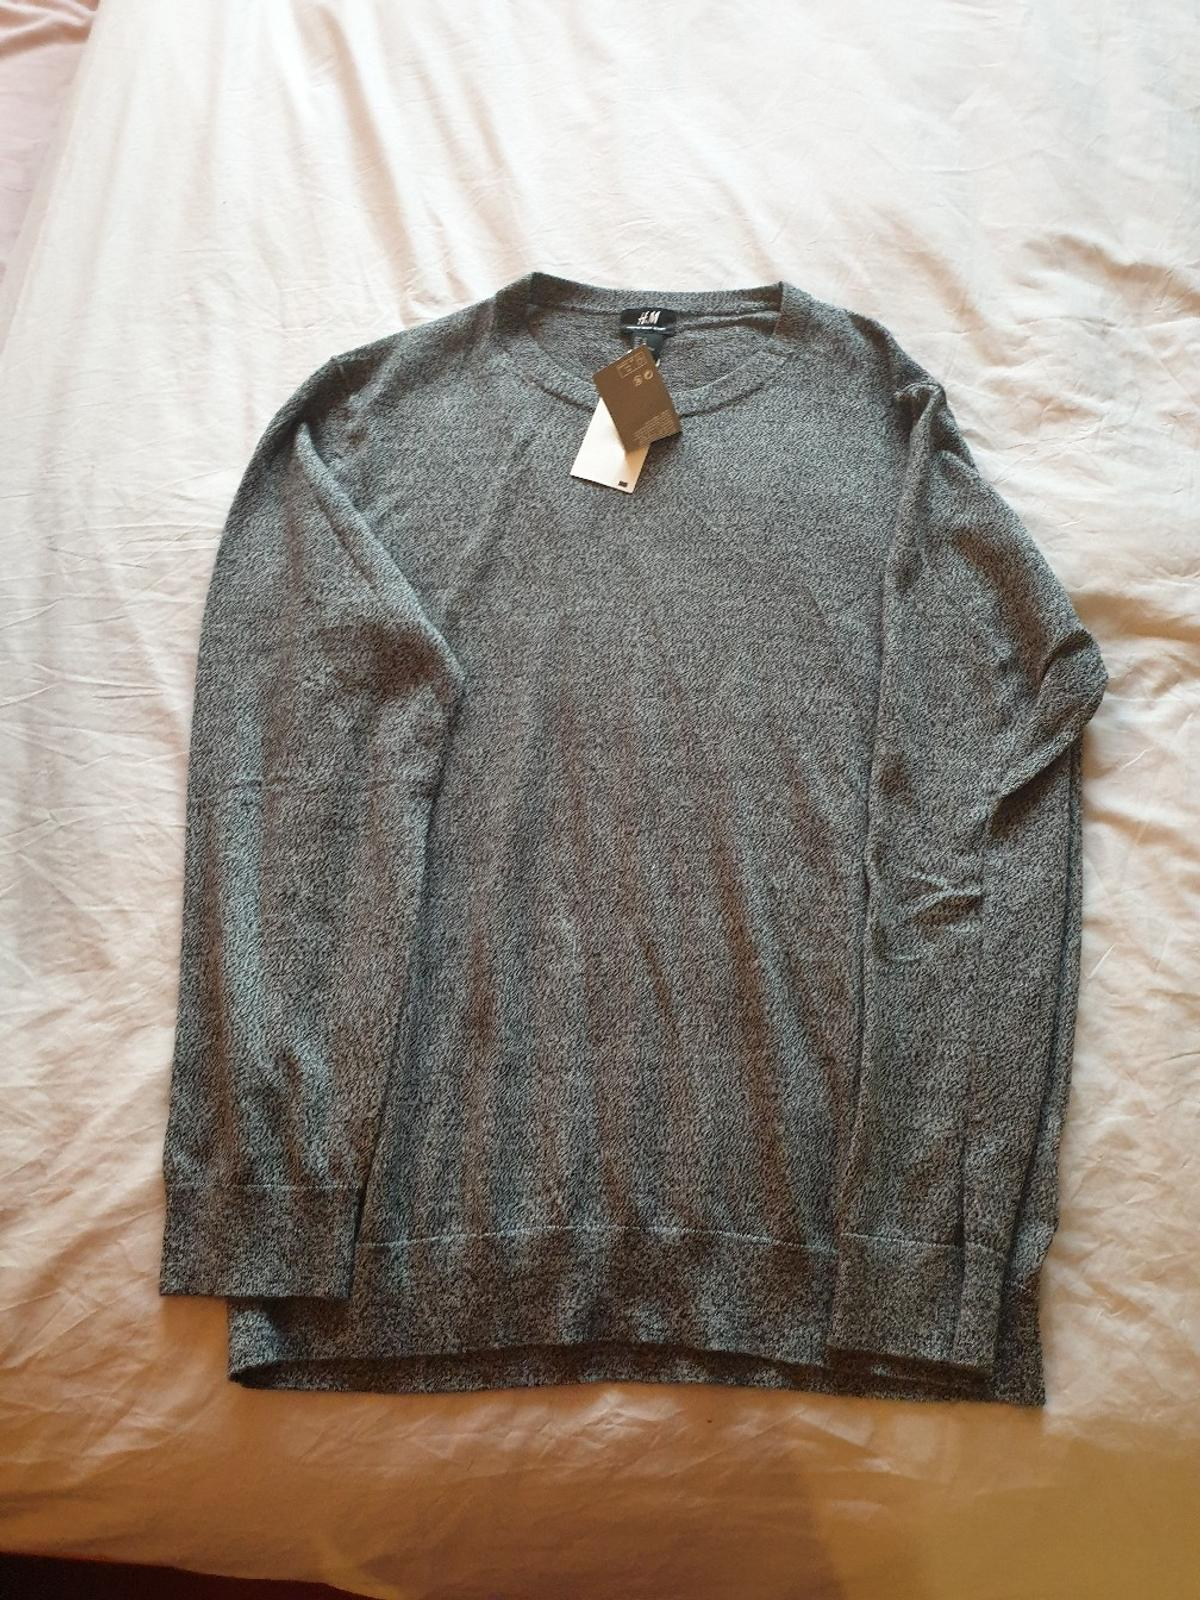 size UK large